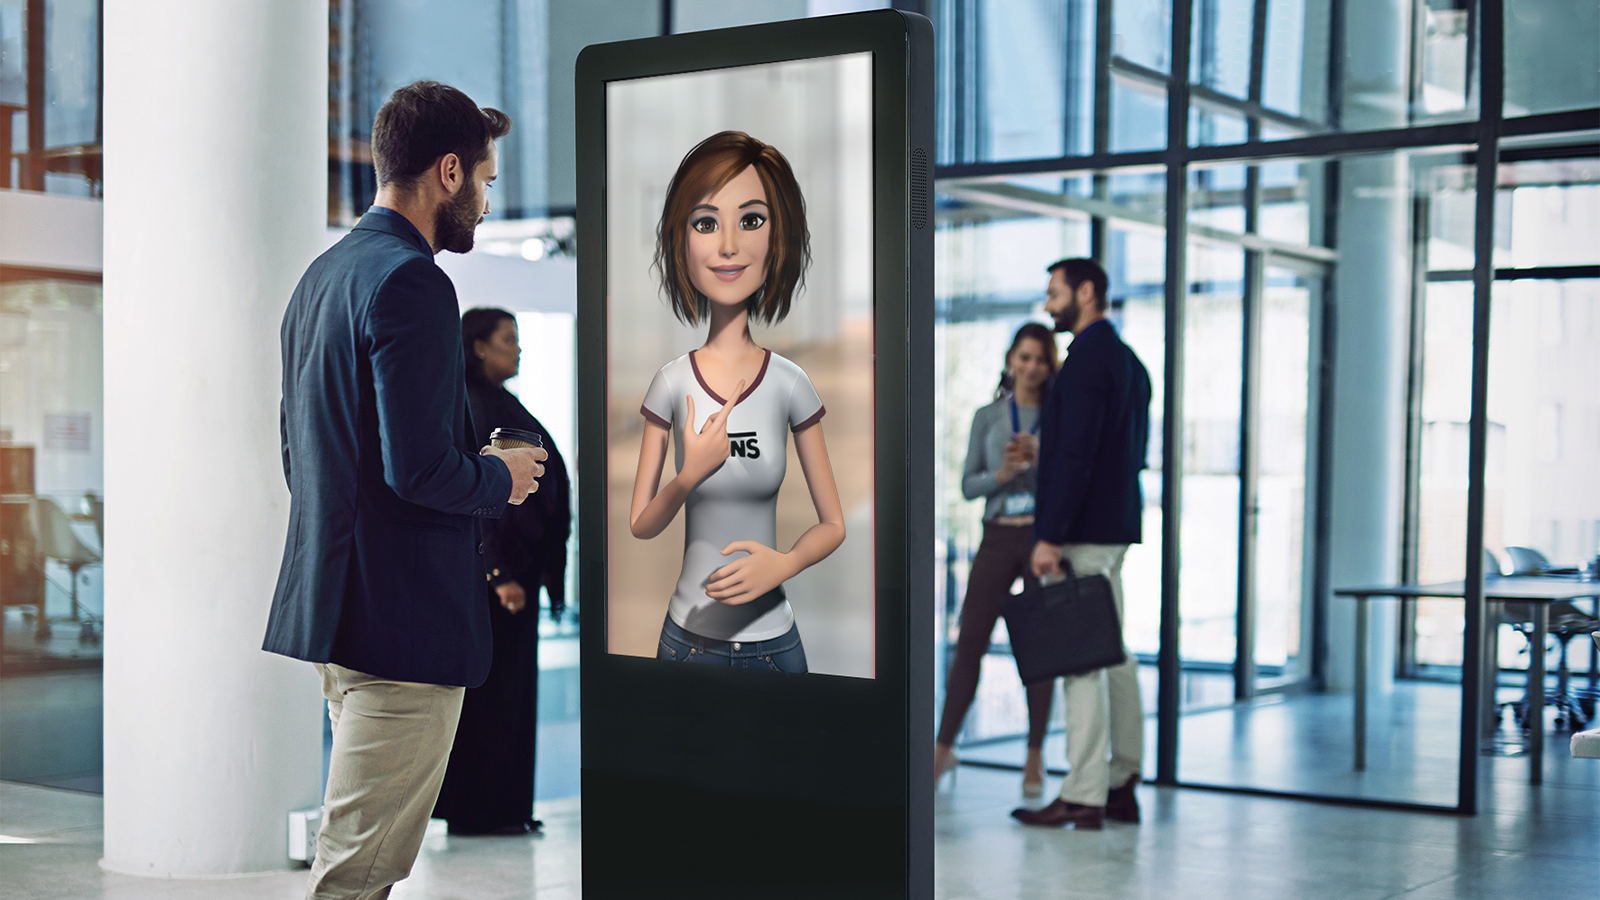 man standing and interacting with prsonas hologram on a screen